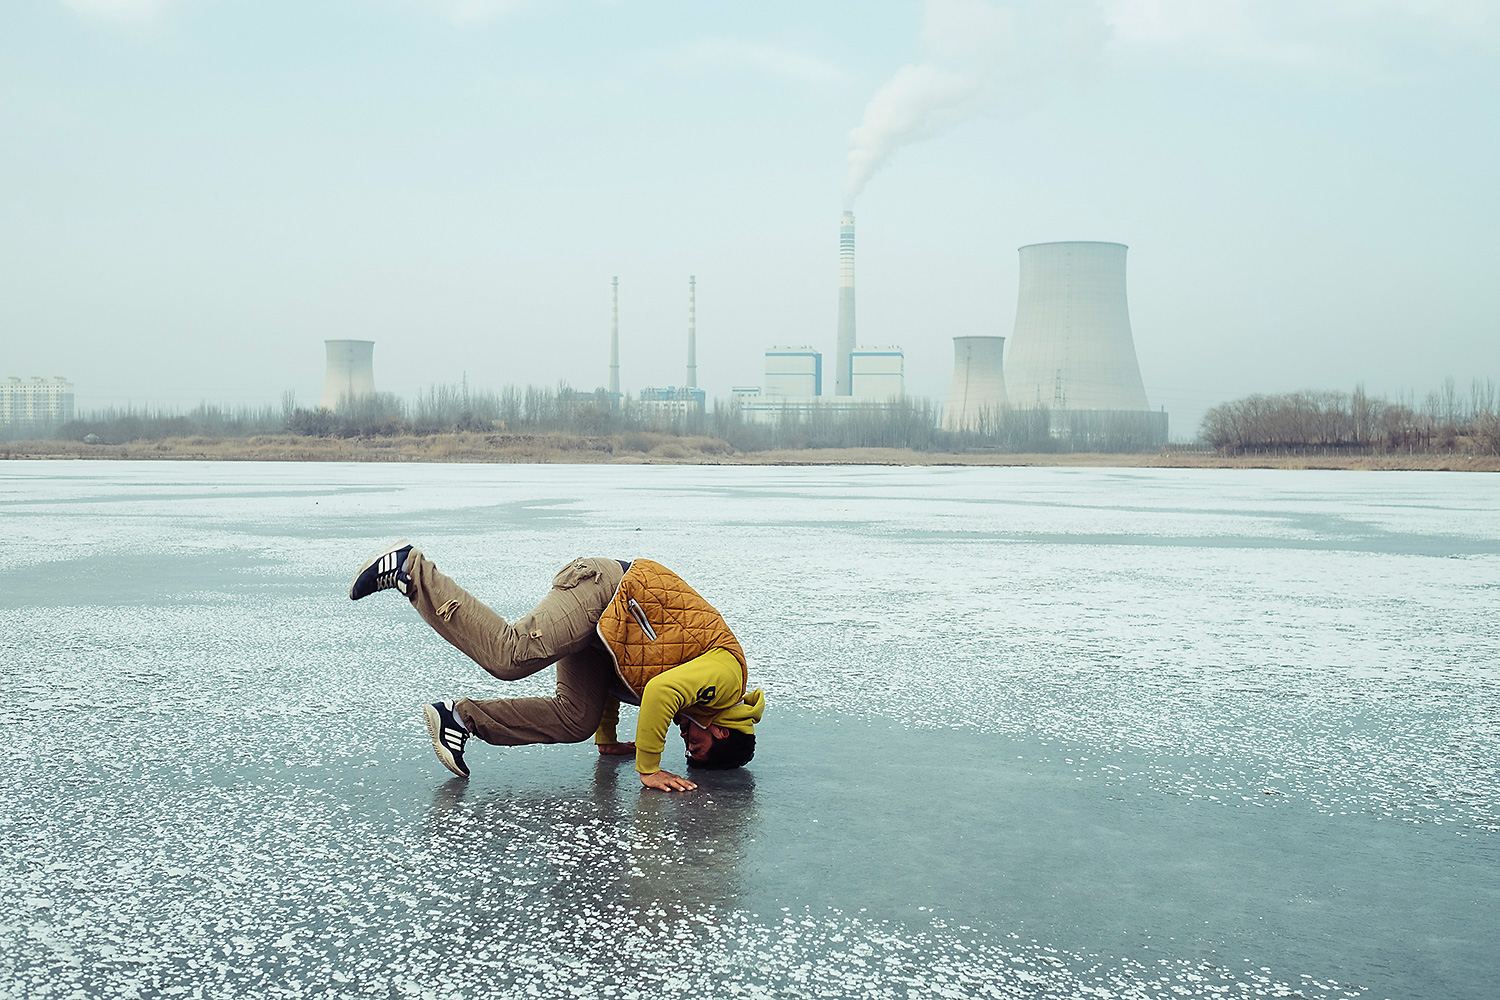 A young man attempts a head stand on the frozen Xiaoyalang Reservoir near a thermal power station.